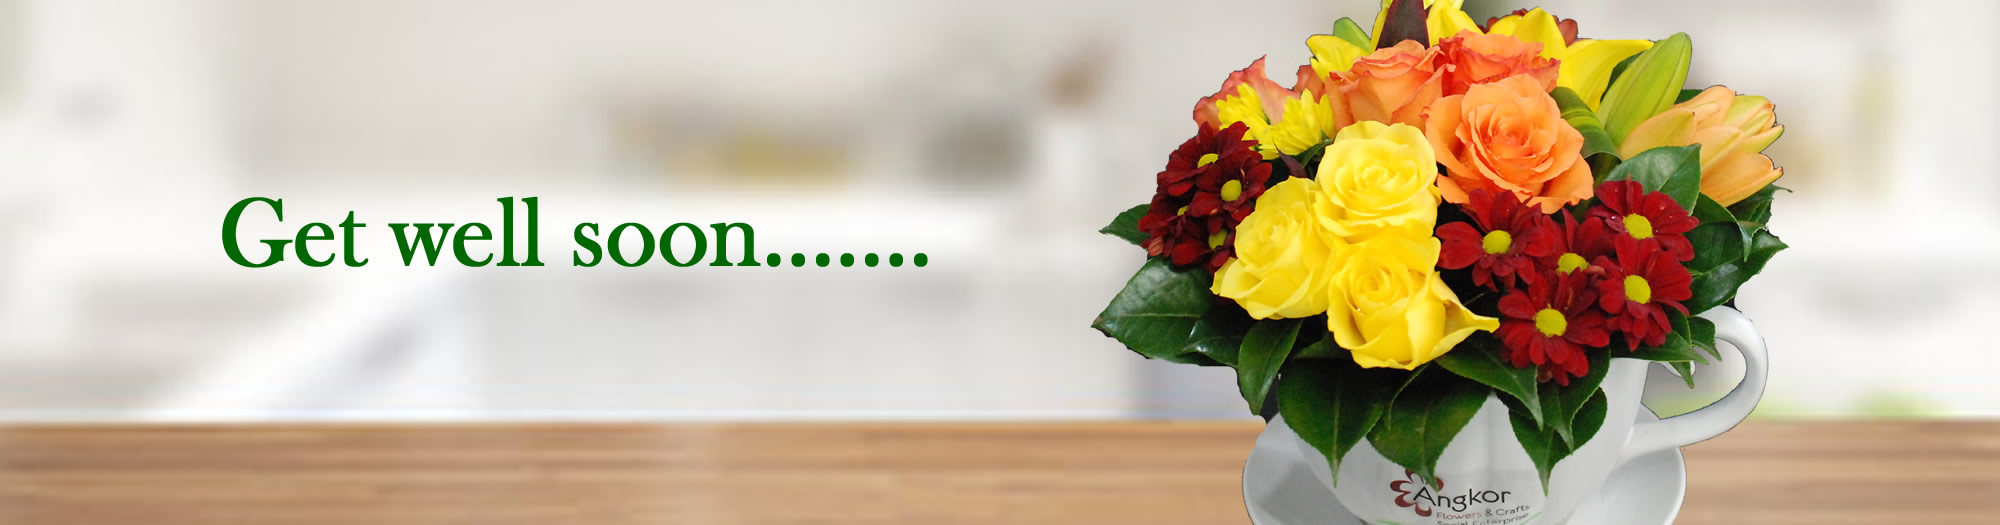 By beautiful get well flowers online fast delivery angkor flowers get well soon2 izmirmasajfo